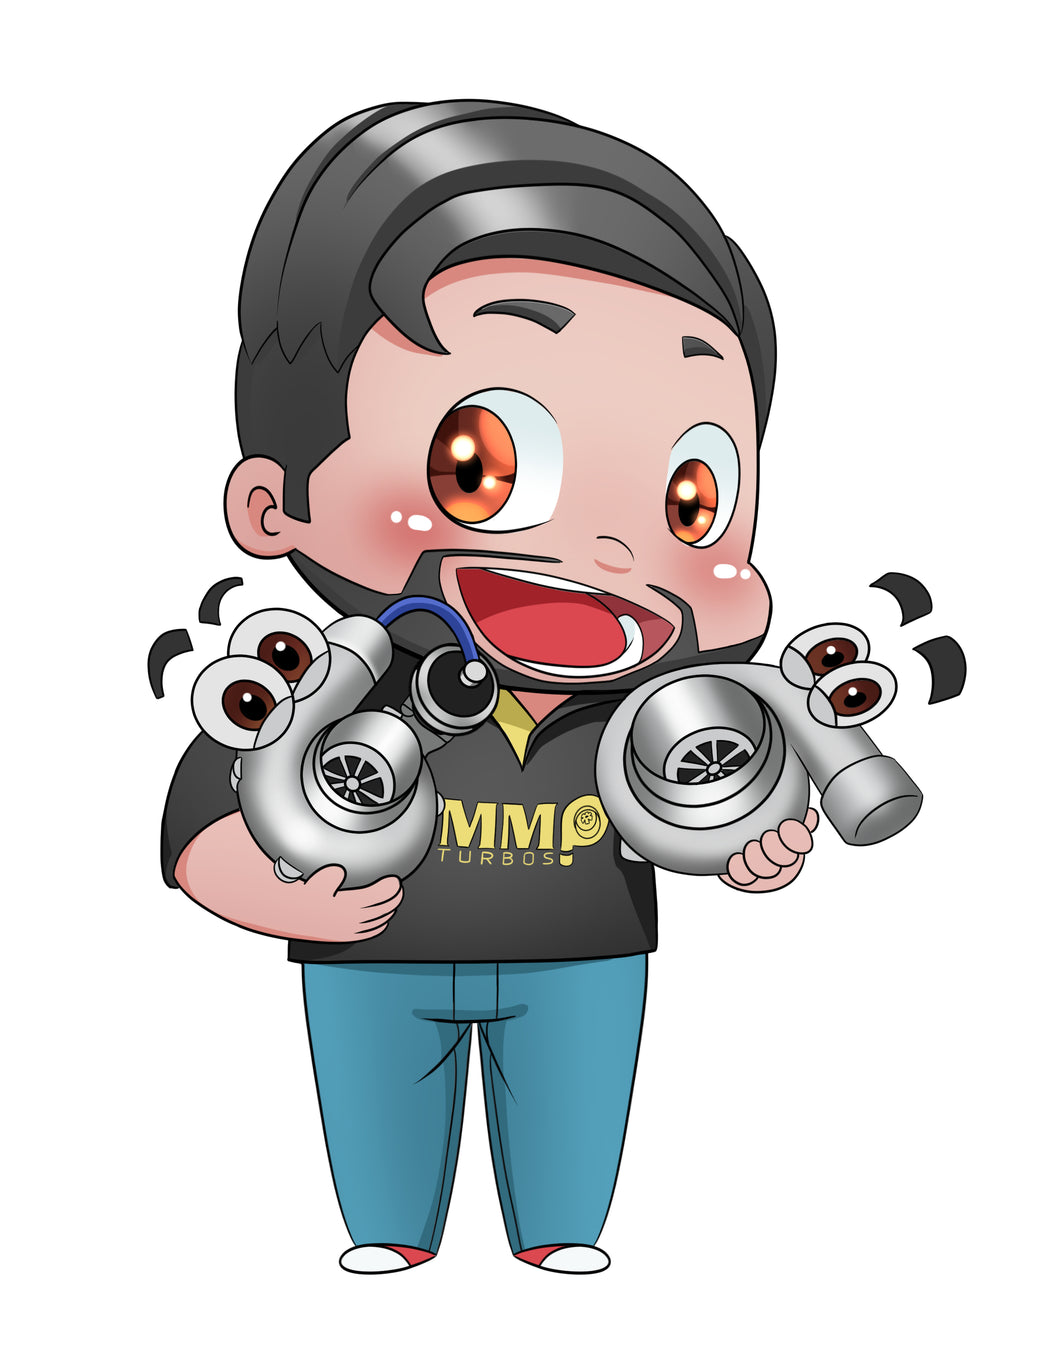 Sticker - MMP Character